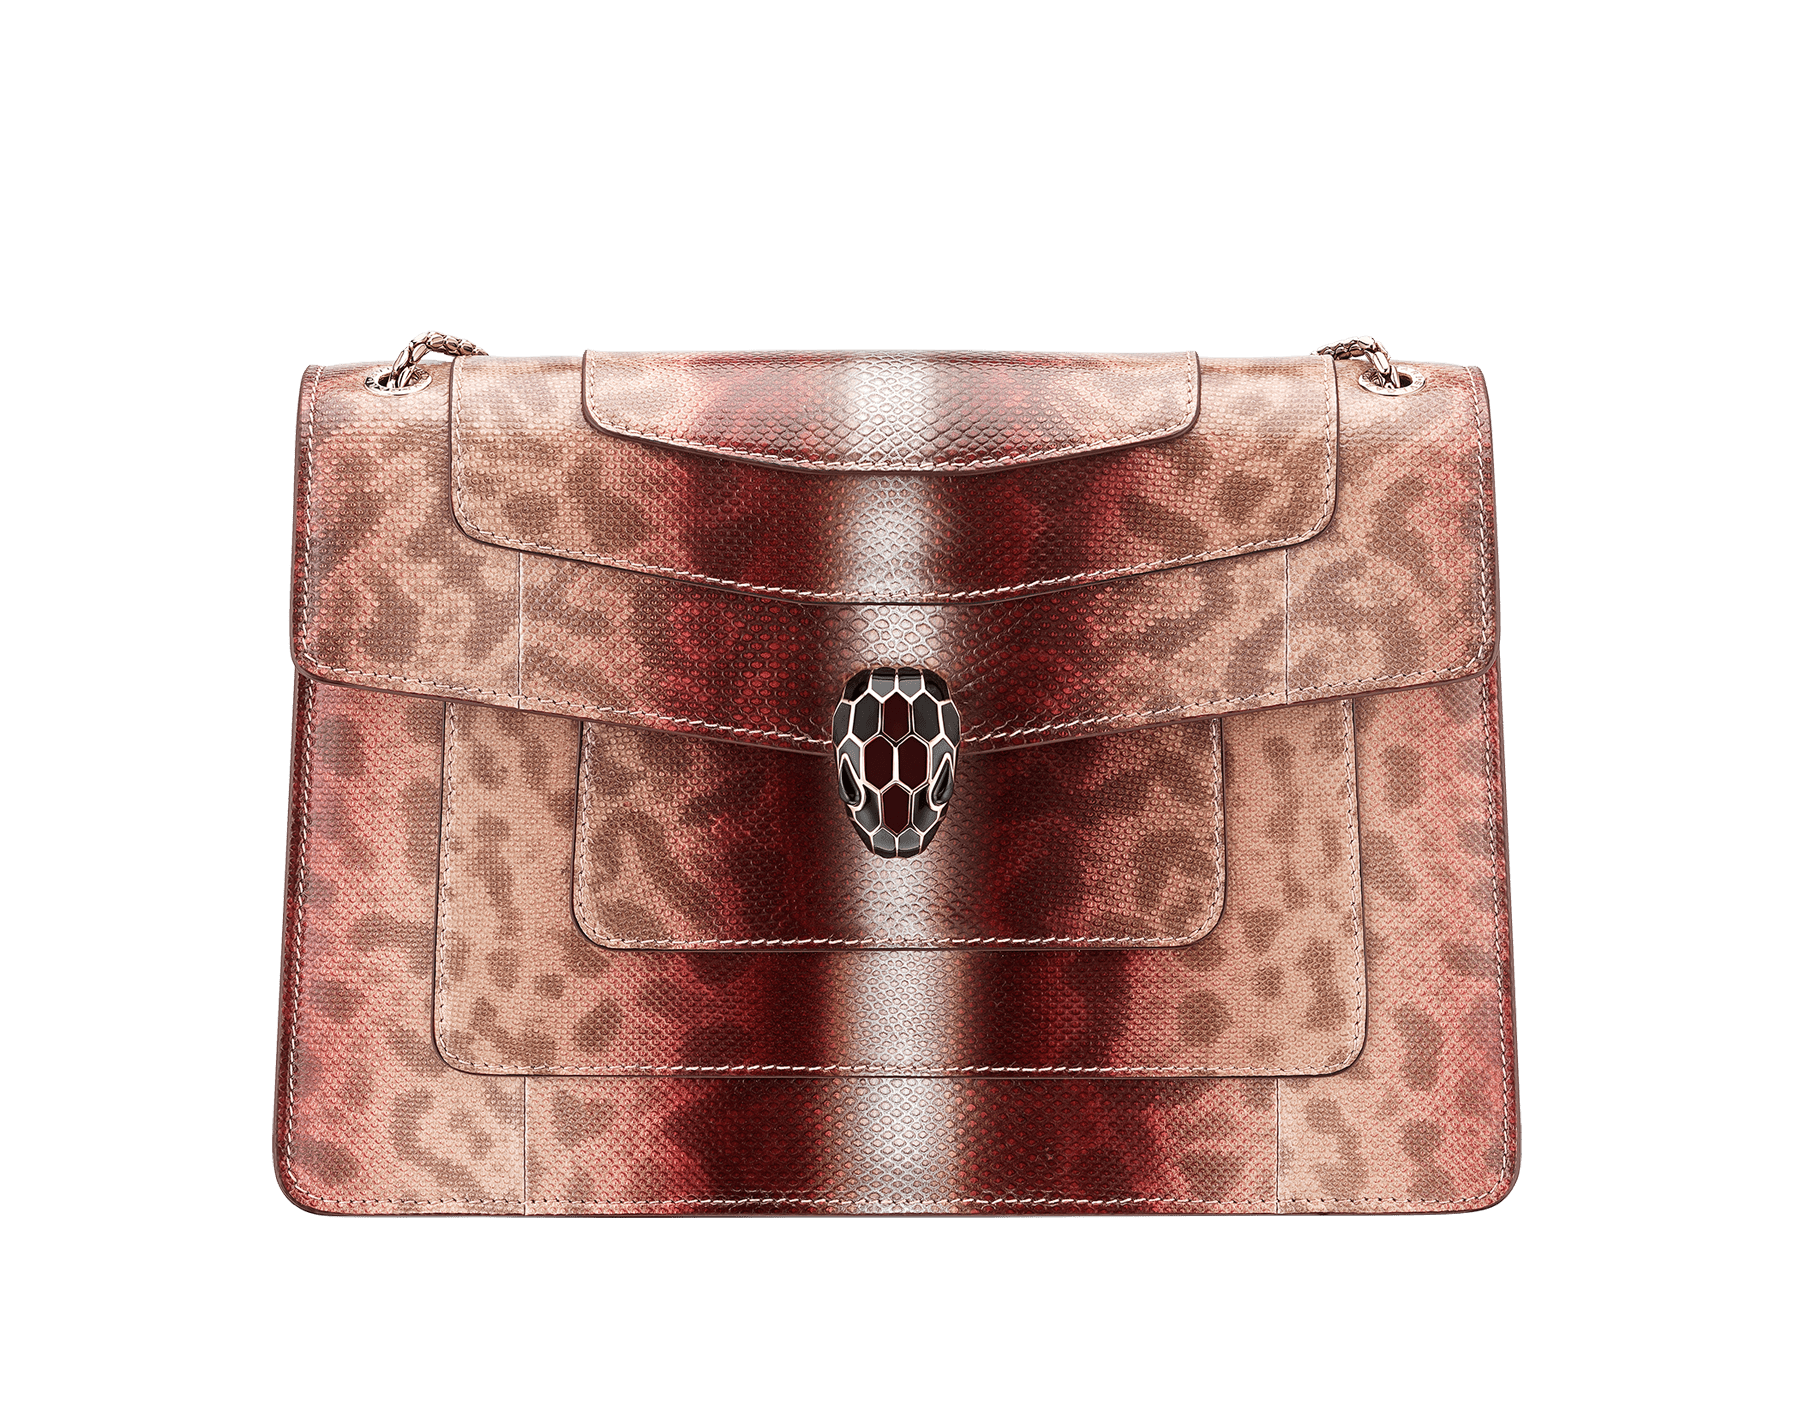 Serpenti Forever shoulder bag in rosa di francia Sahara karung skin. Iconic snakehead closure in light gold plated brass embellished with roman garnet and black enamel and black onyx eyes . 289015 image 1